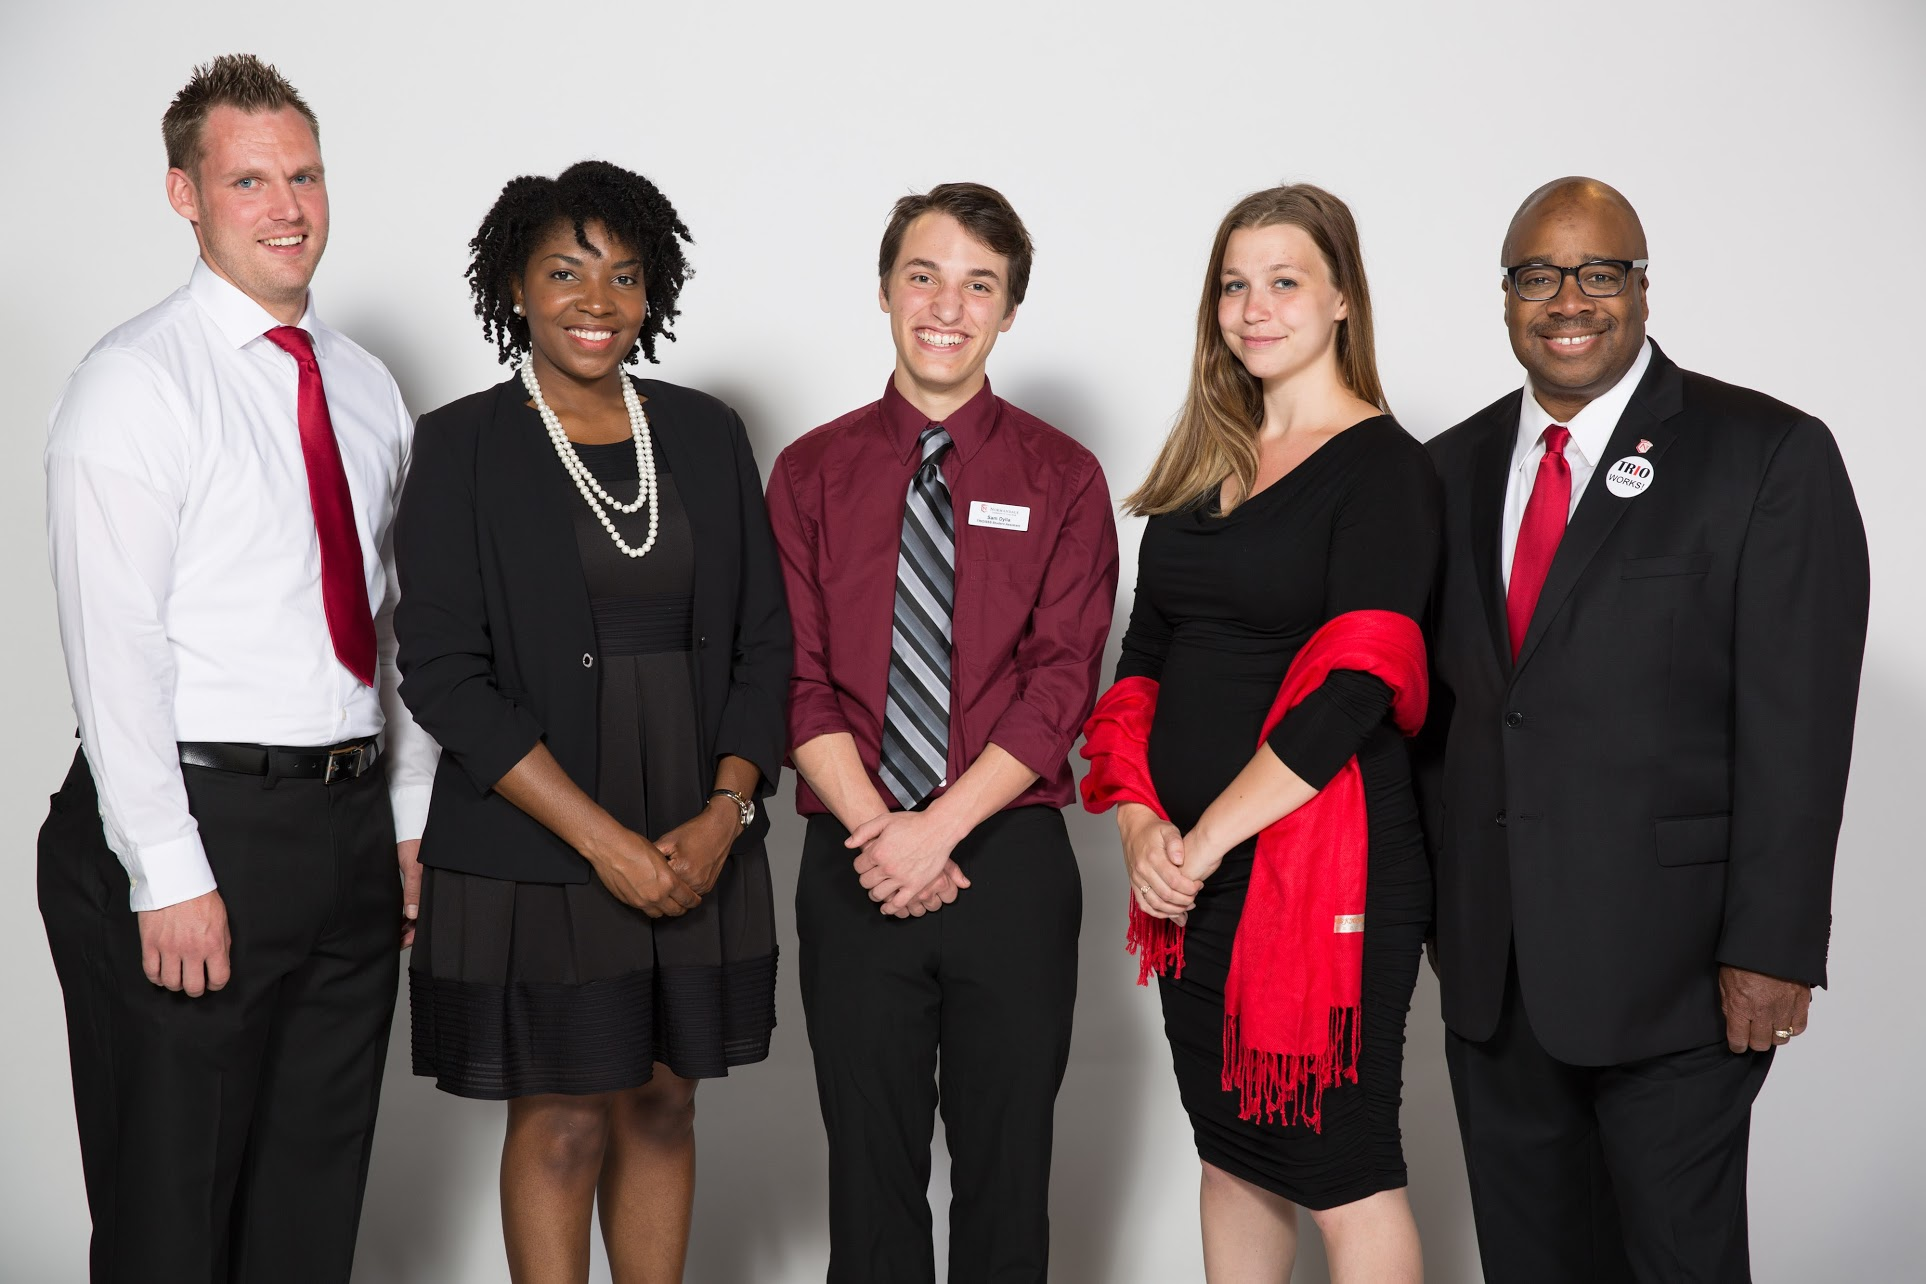 From left to Right: James, Aucuria, Sam (student worker), Heather, and Frederic